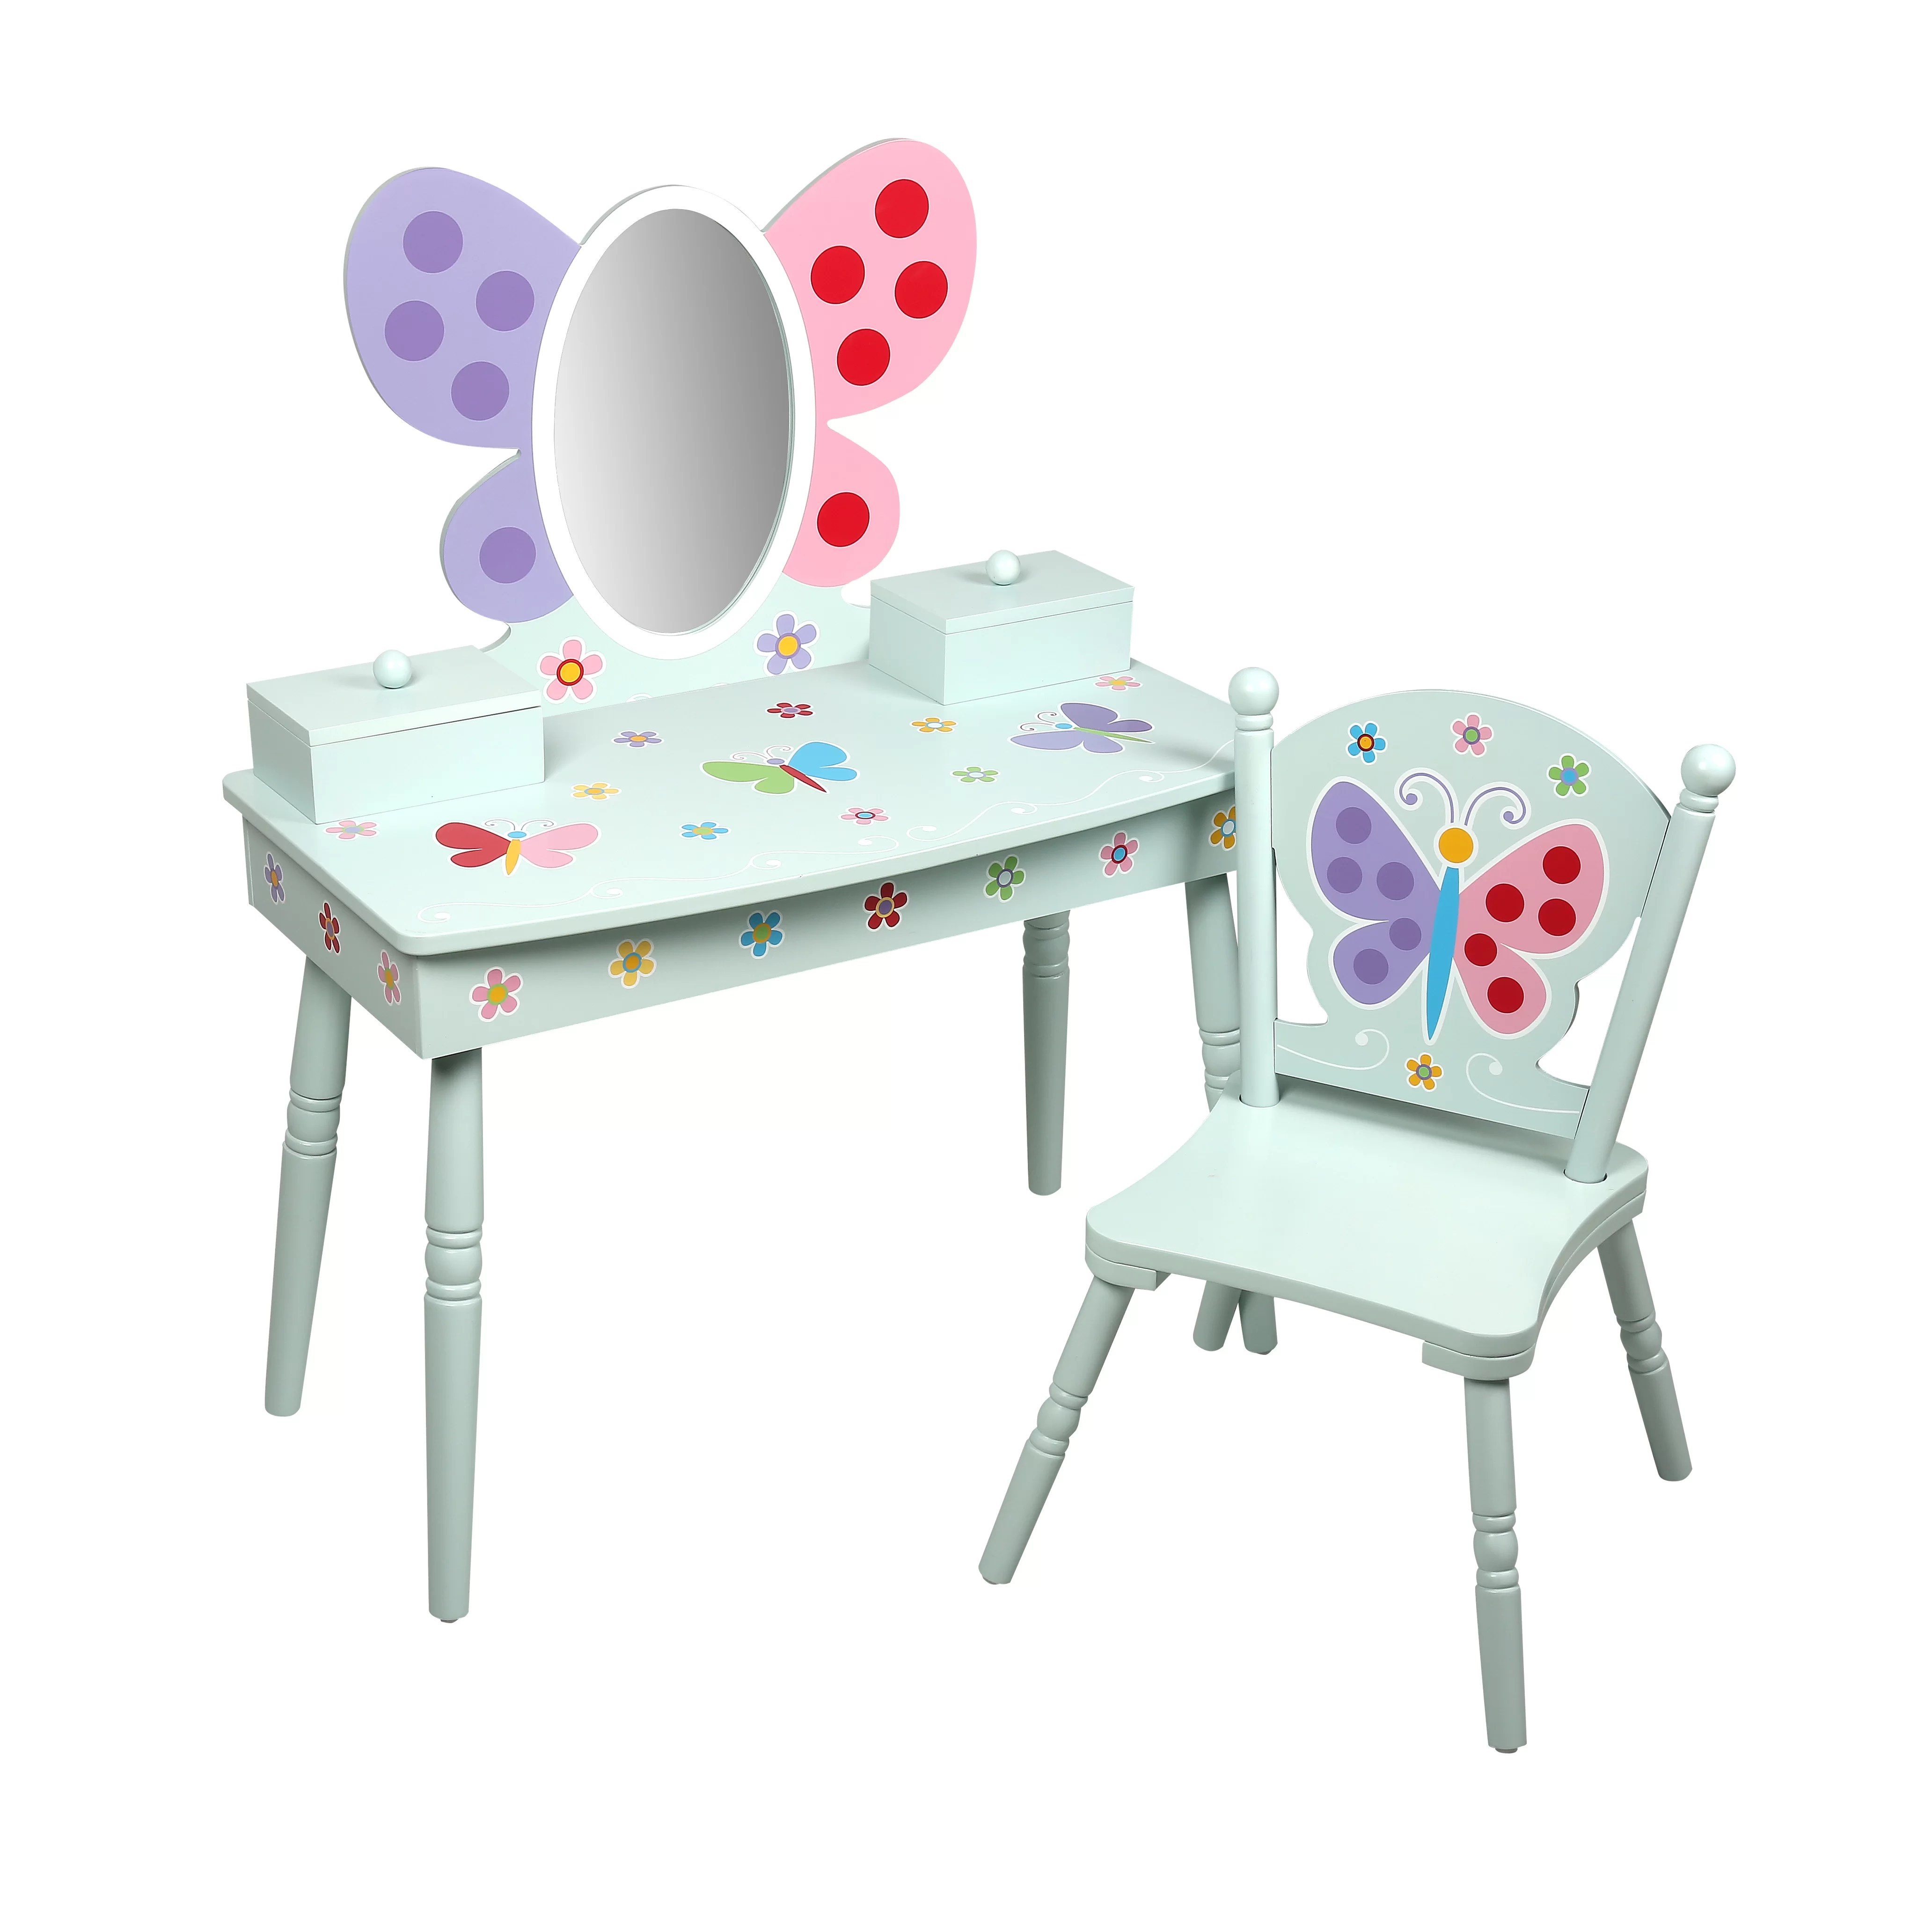 Butterfly Chairs Target Levels Of Discovery Olive Butterfly Garden Kids Vanity Set